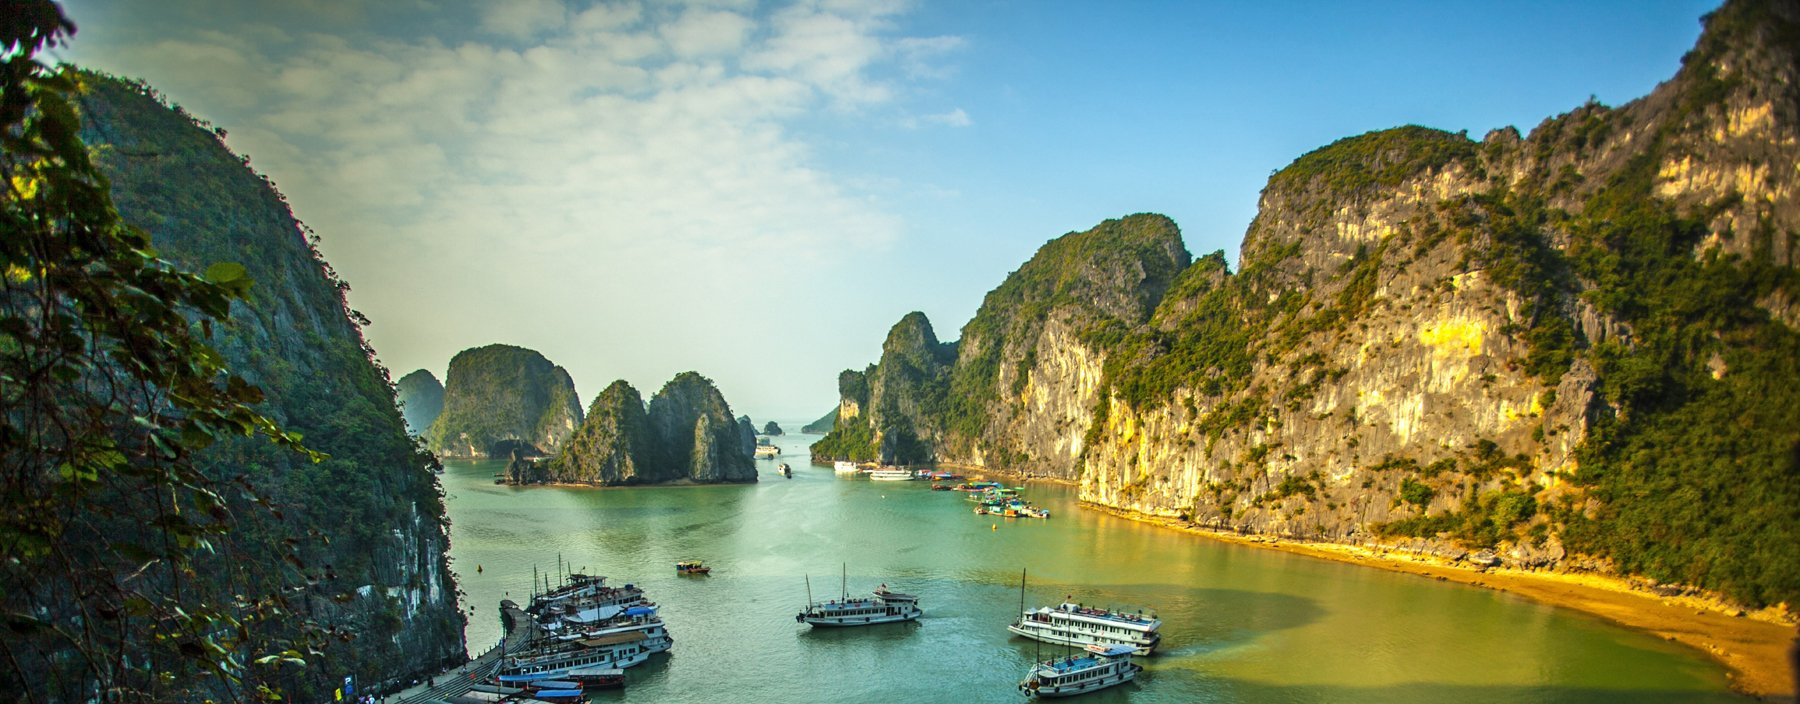 vn, halong bay, halong bay (4).jpg